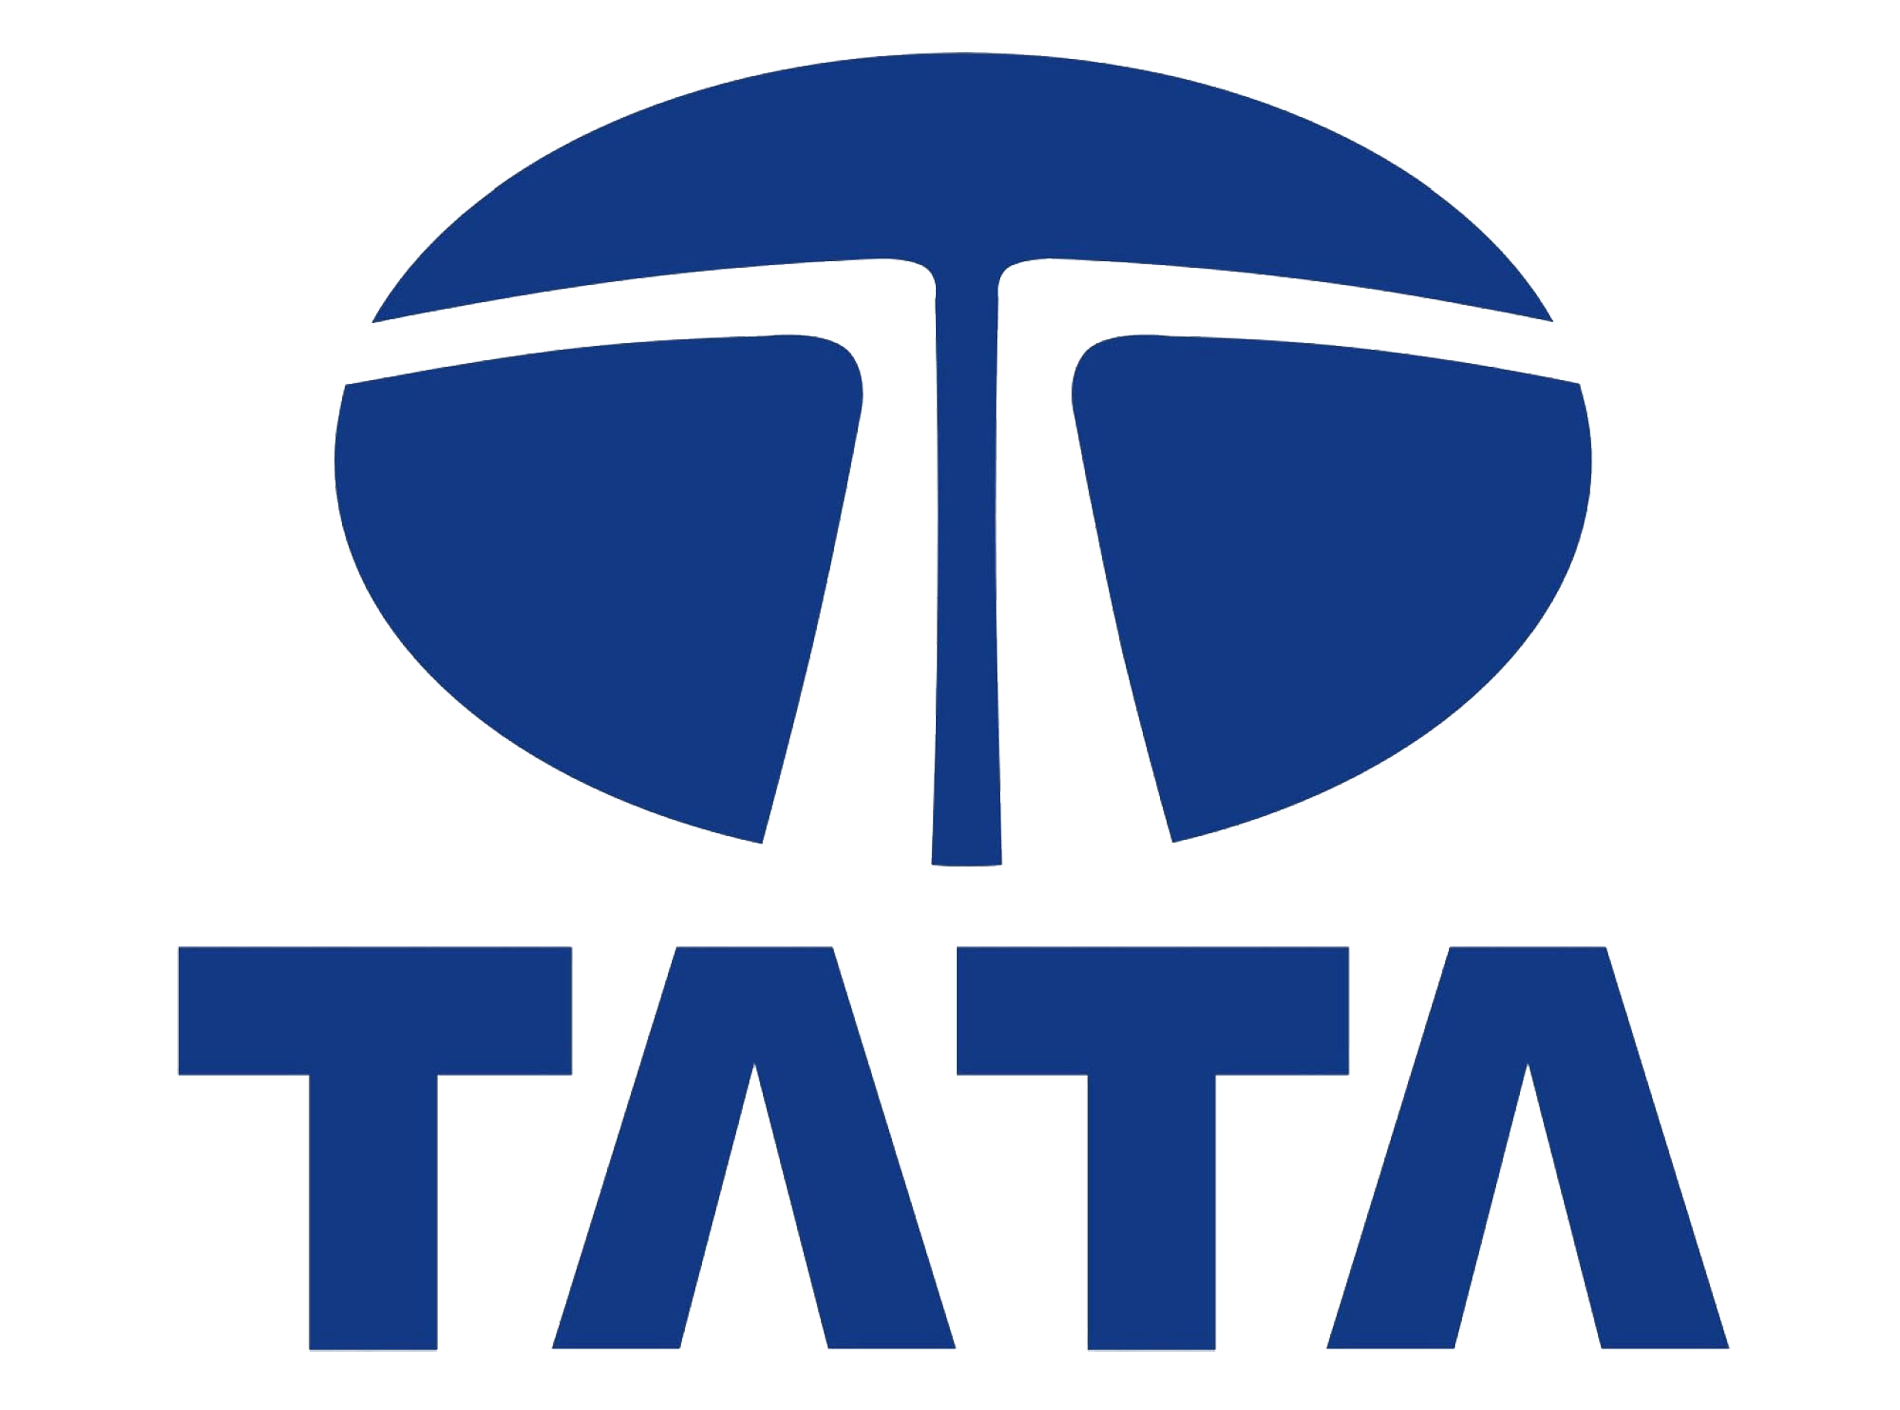 Tata Hiring | Engineer (Managed service operations) | B.E/B.tech/Diploma in Mechanical/Production |